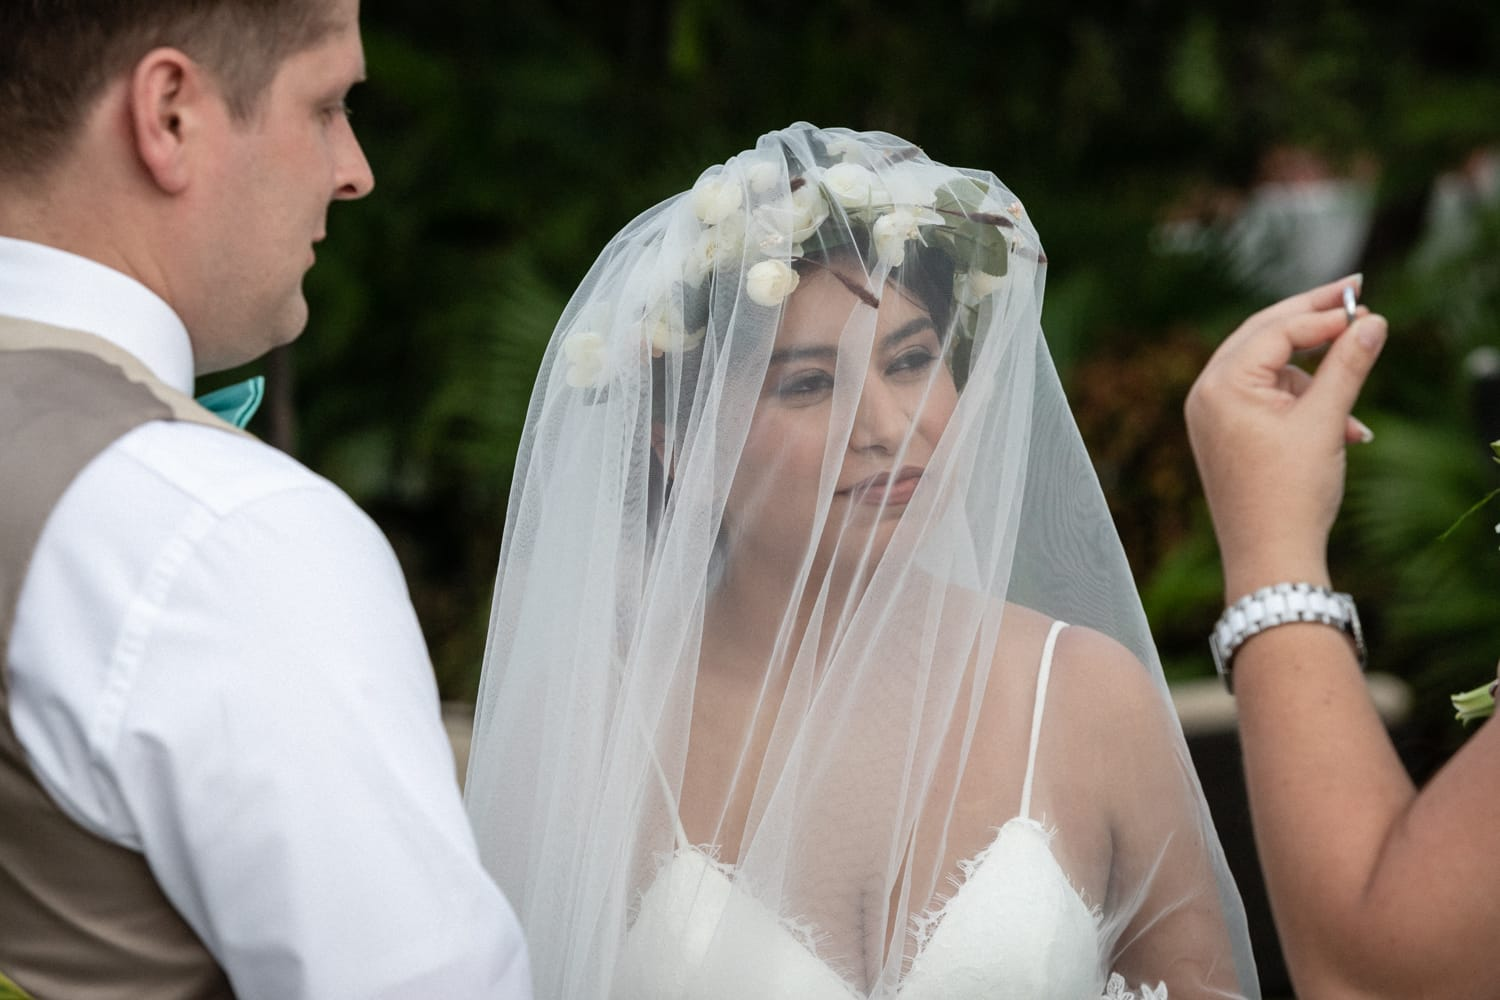 Couple getting married in Costa Rica exchange wedding rings.